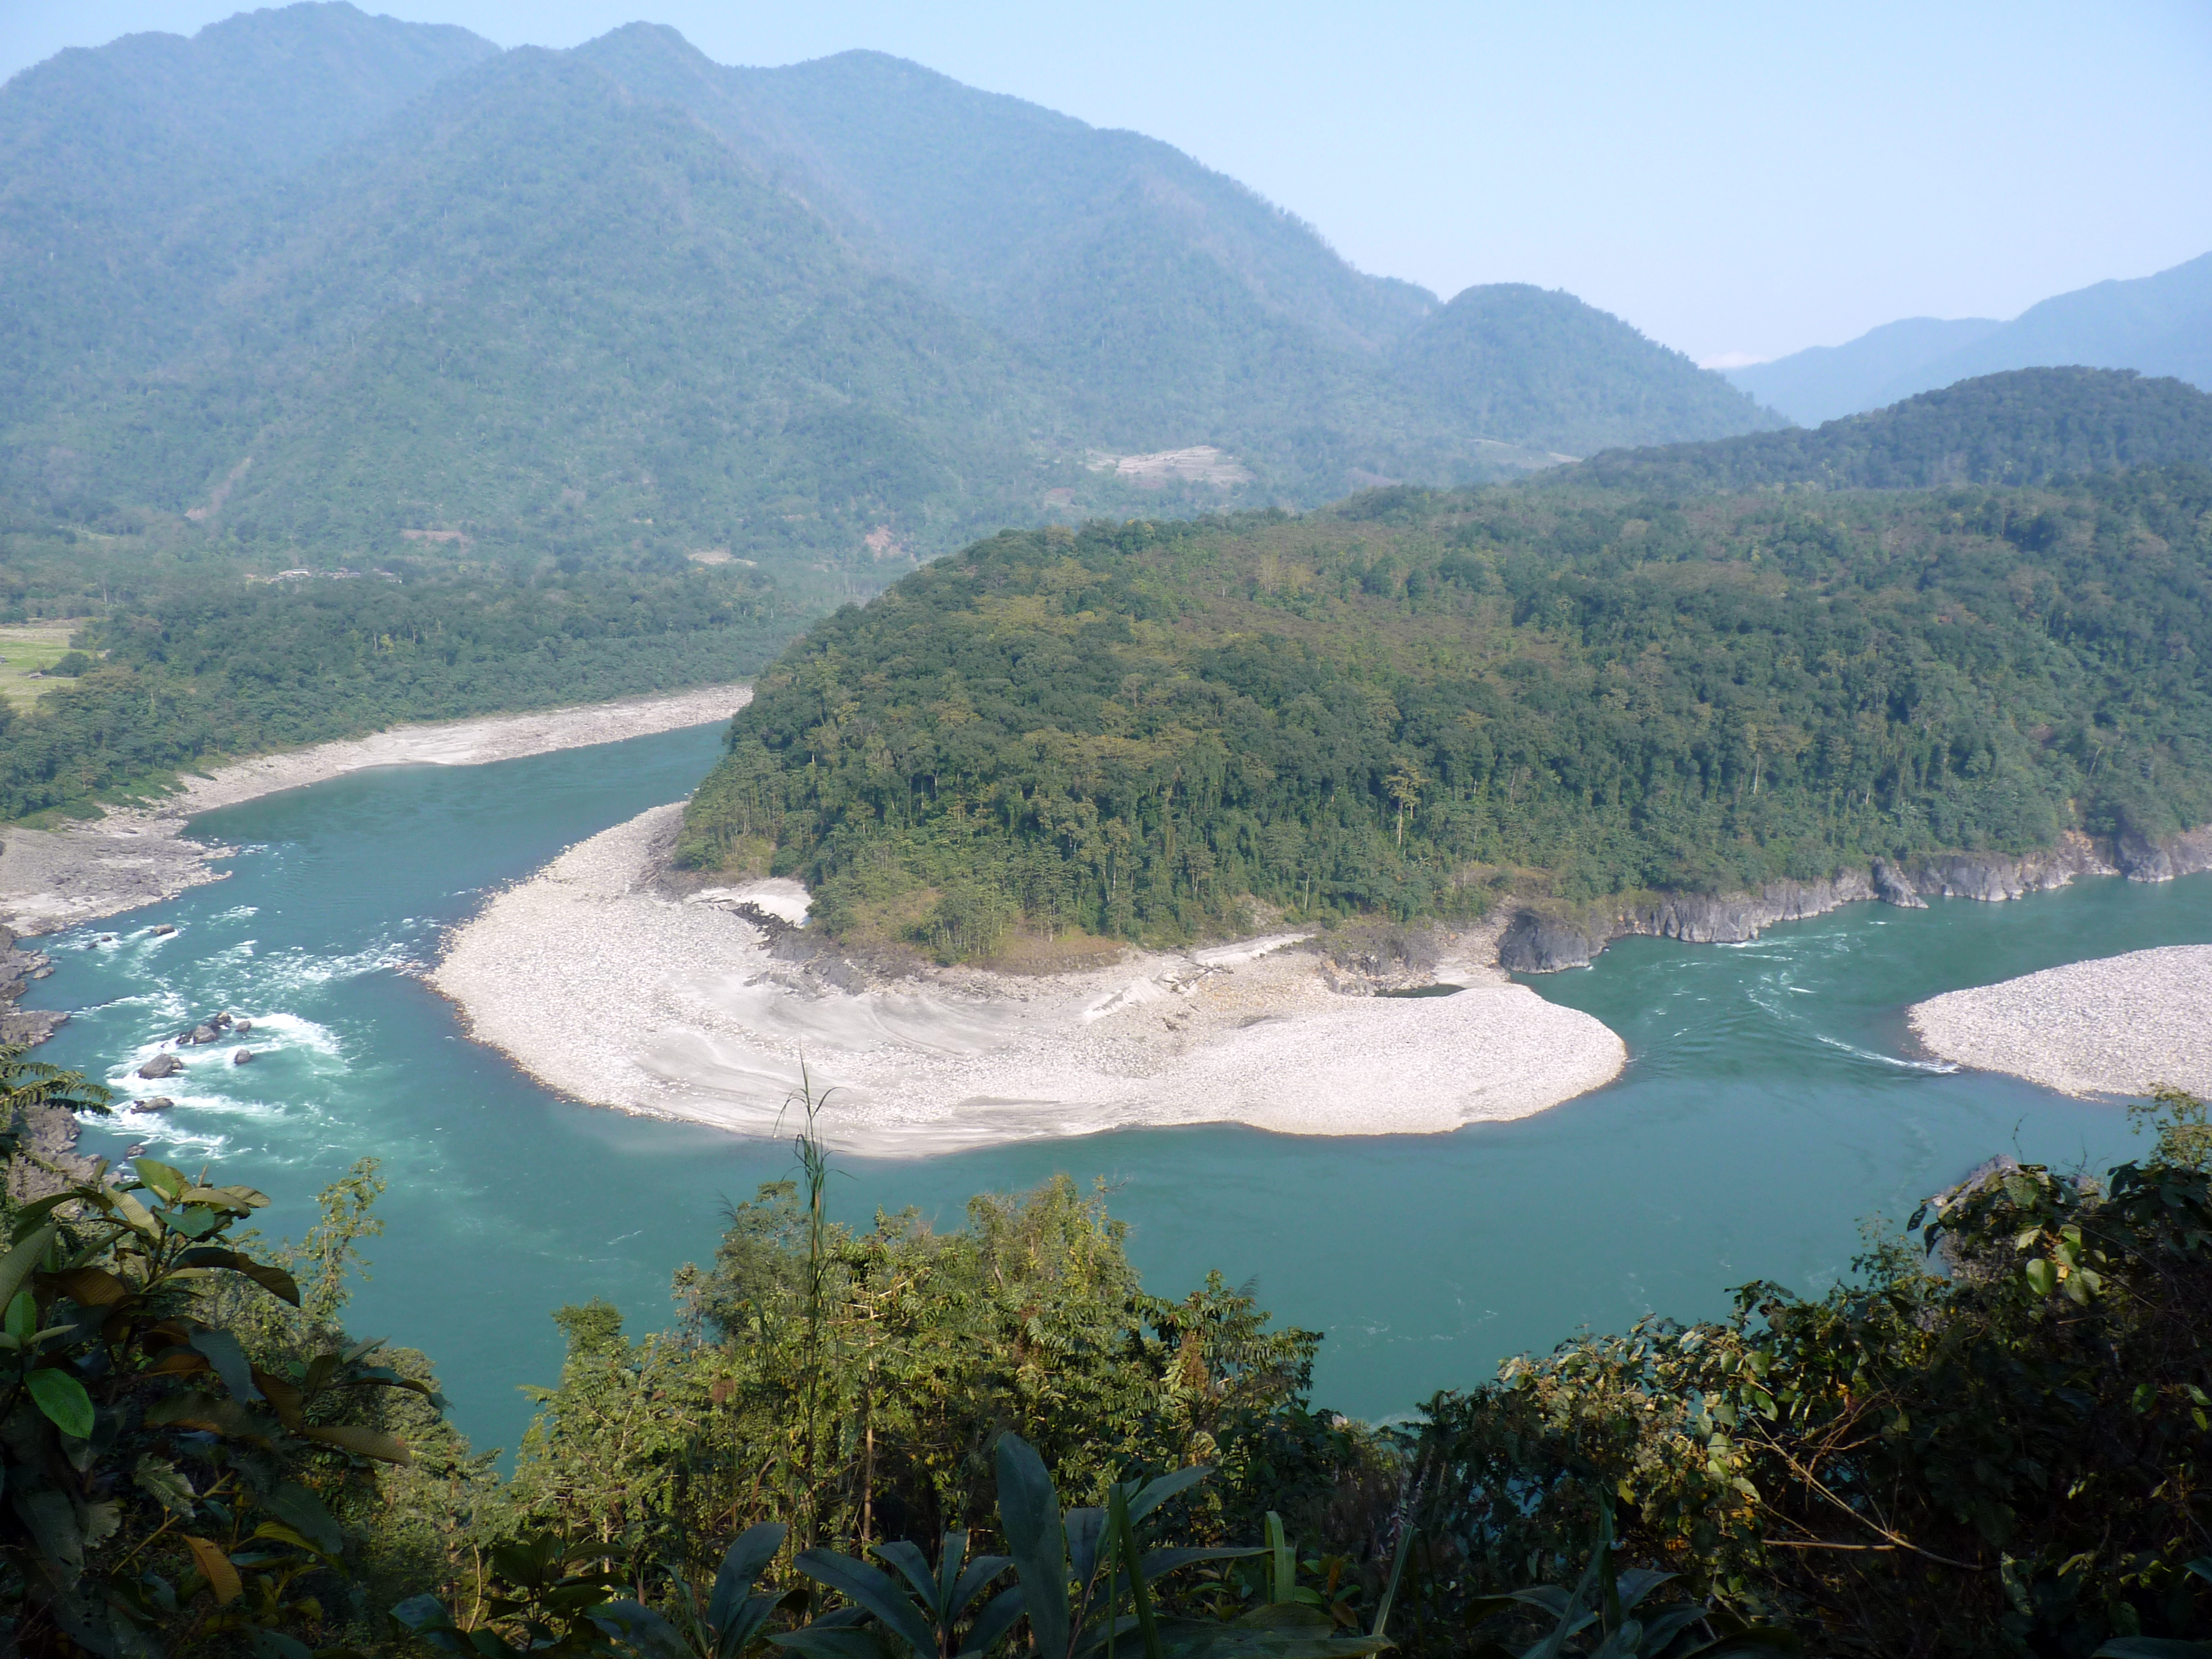 There are 44 dams planned in the Siang basin, including five on the Siyom tributary, according to a 2013 study. (Credit: Mousvurik / Wikimedia Commons CC BY 4.0)